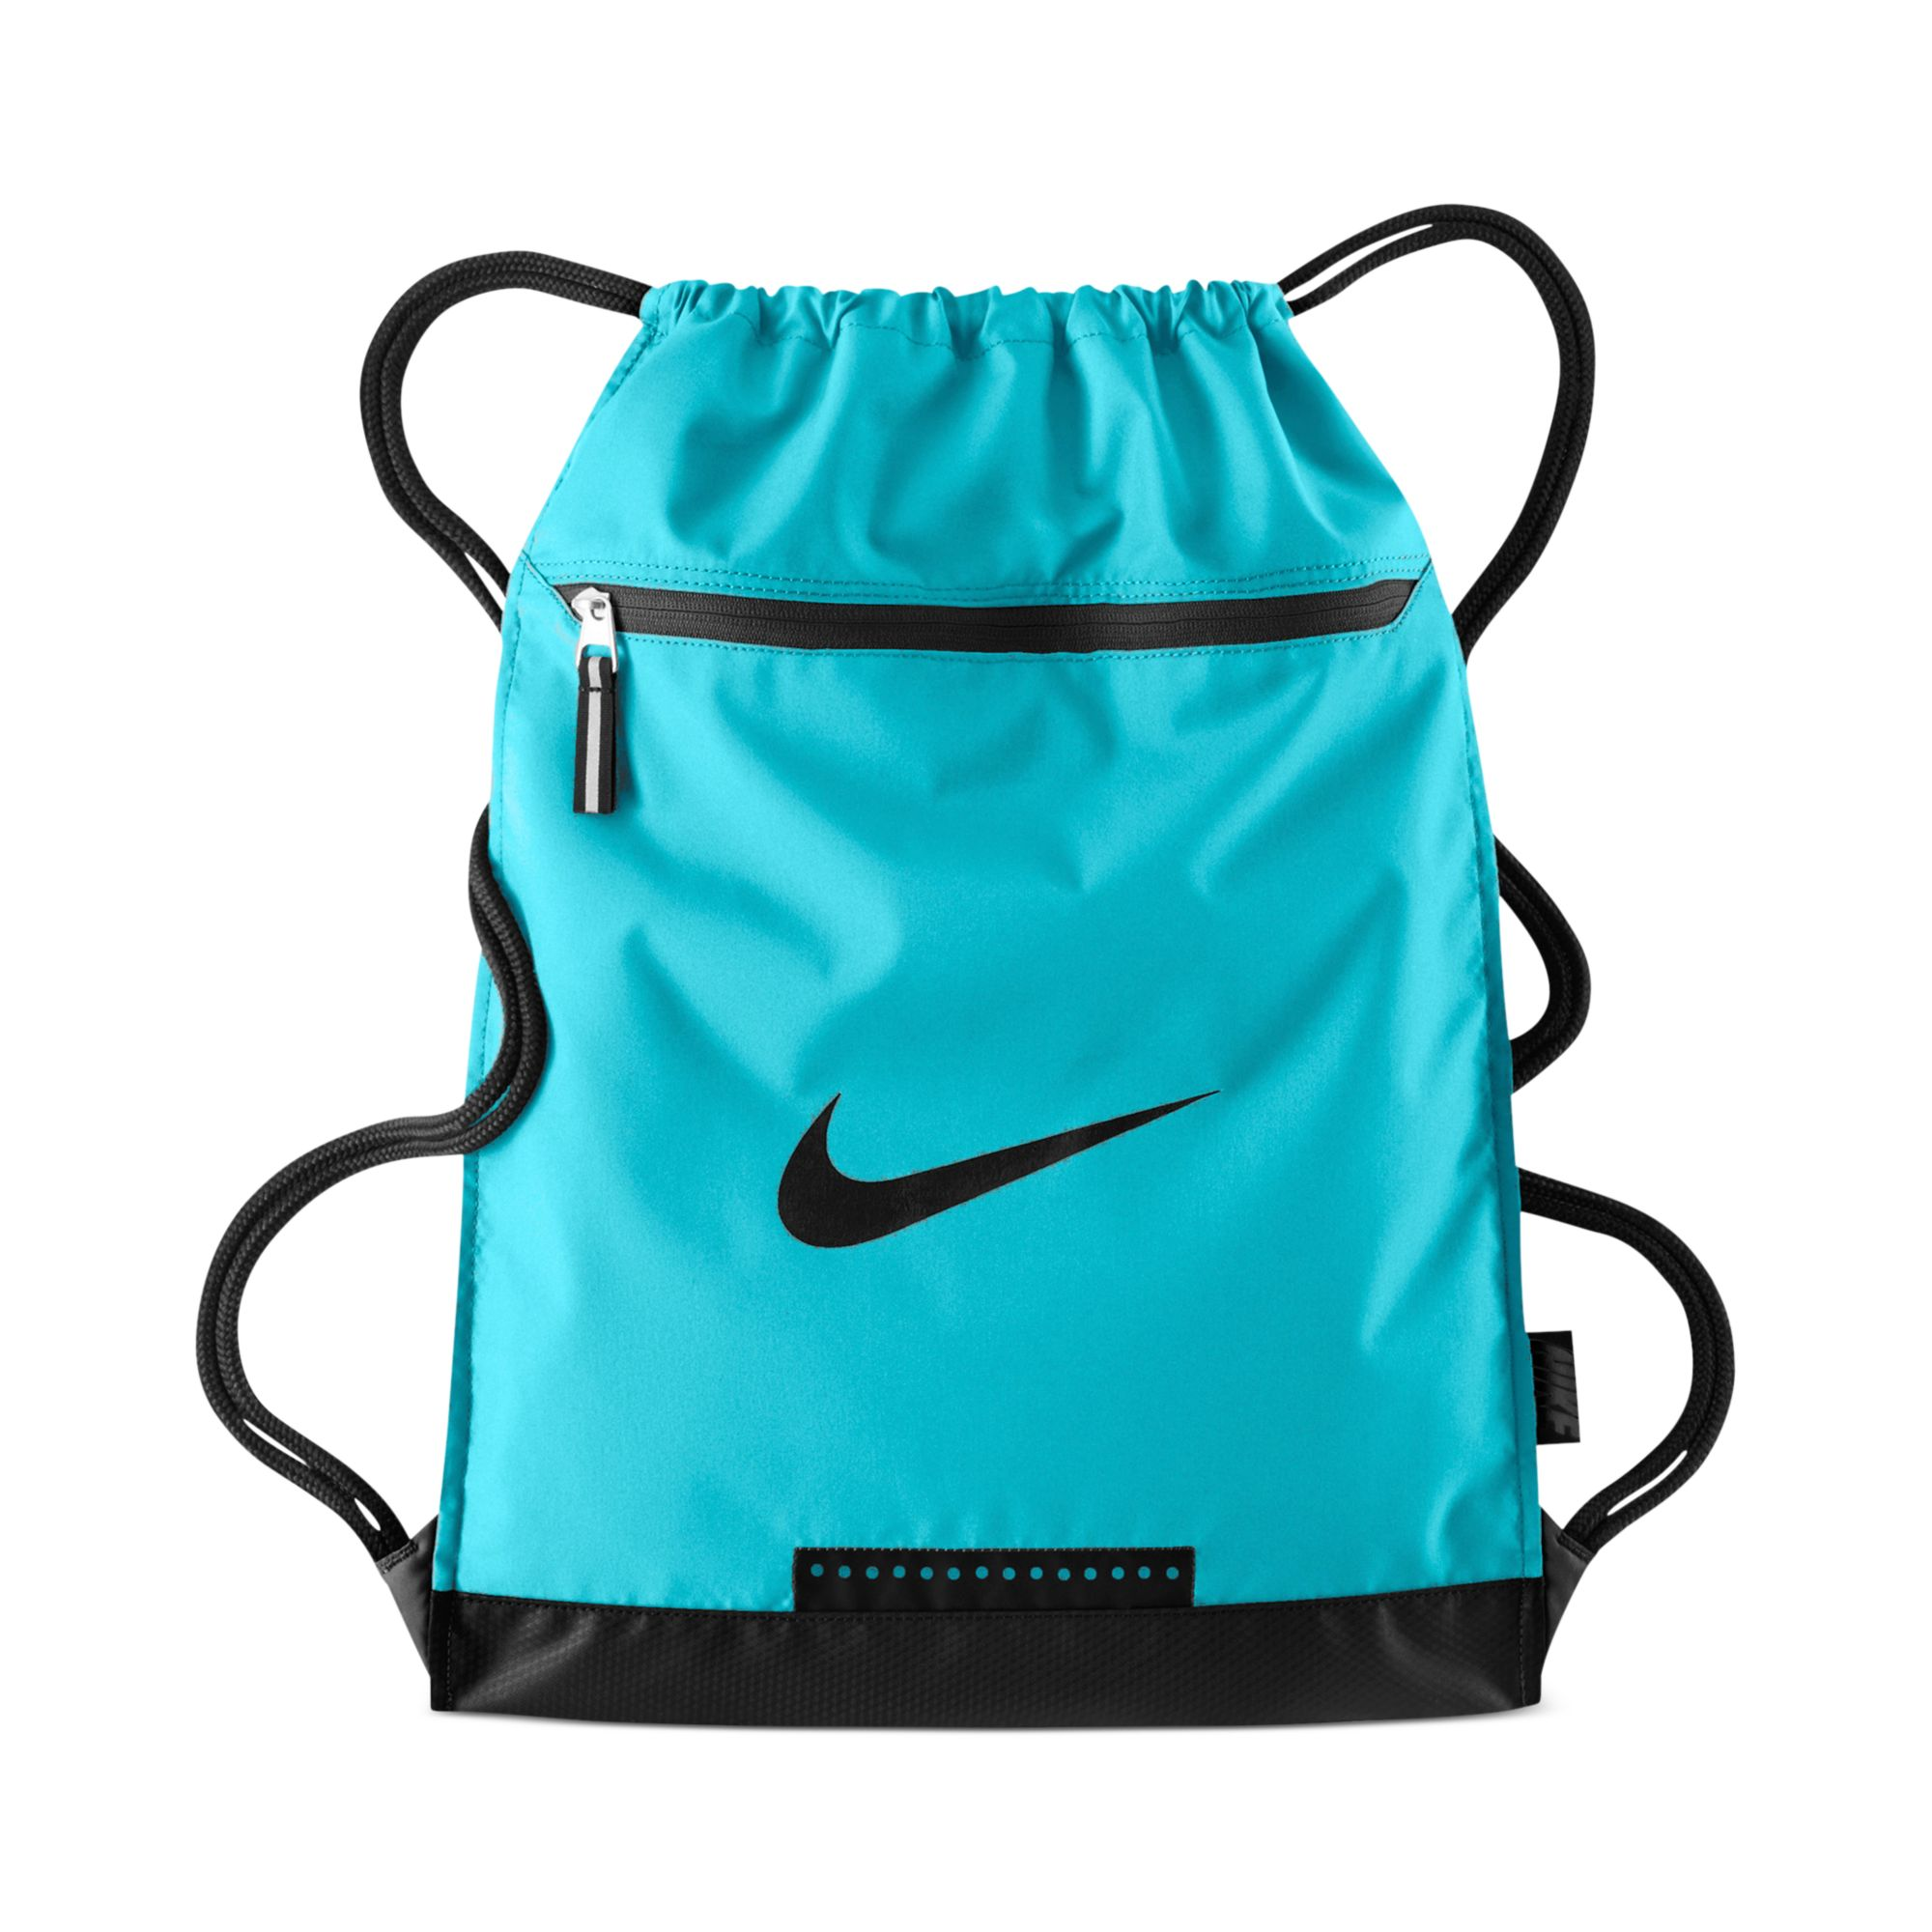 Nike Team Training Gymsack Bag In Blue For Men Gamma Blue